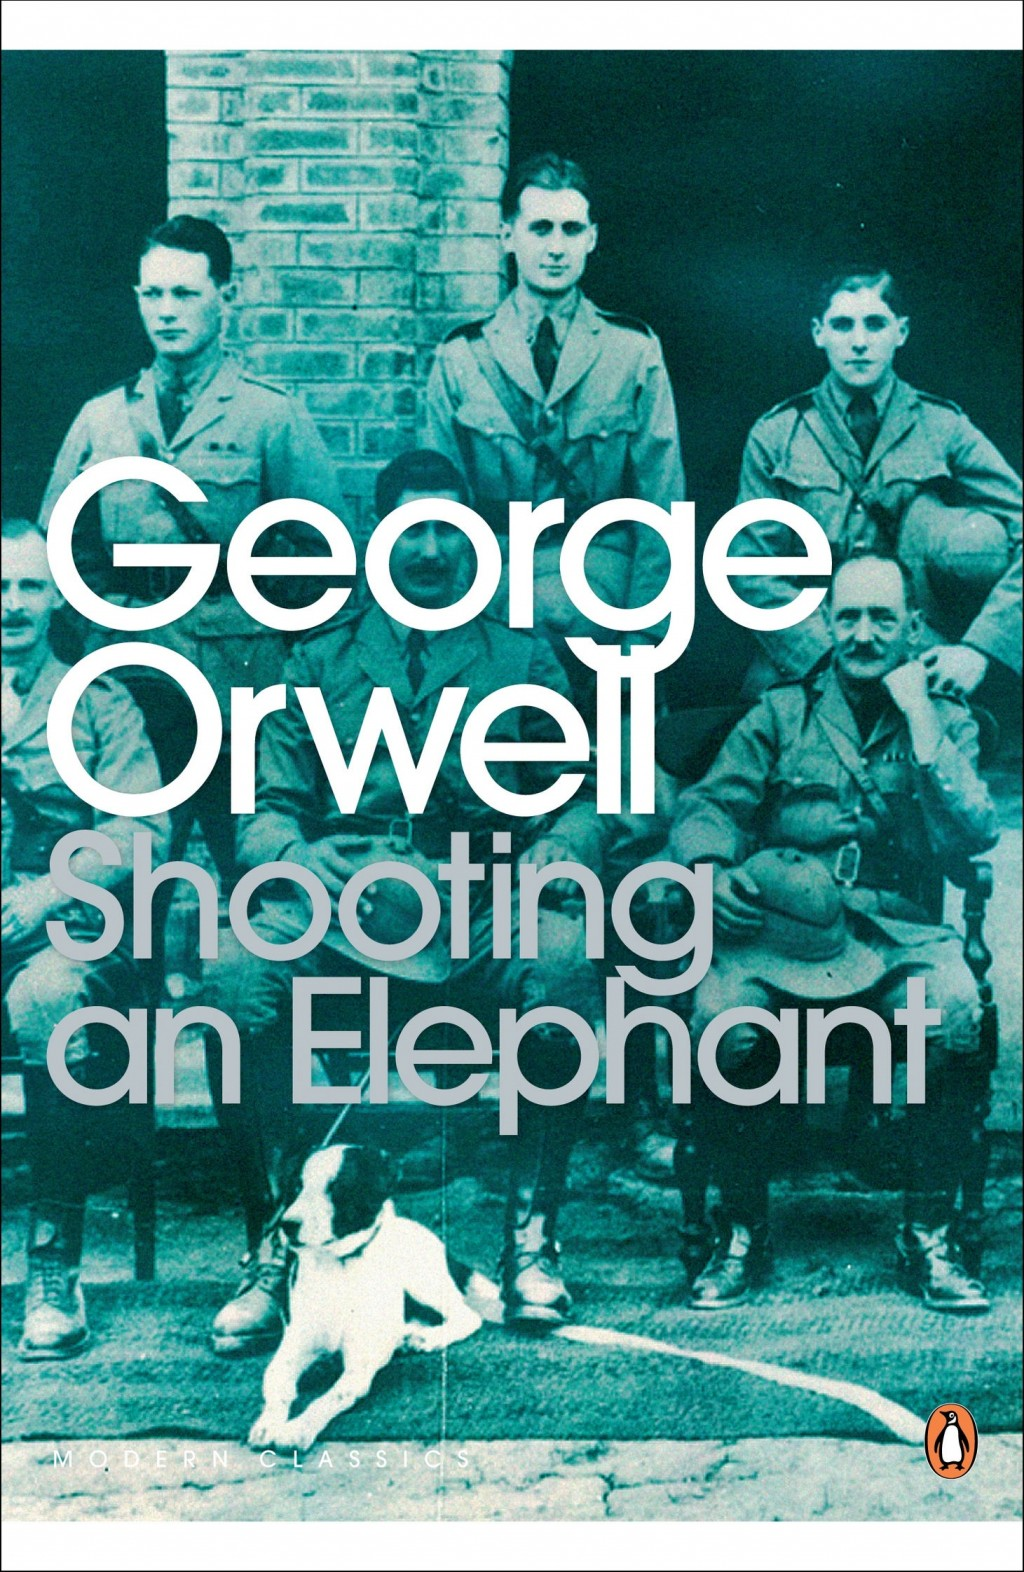 020 Orwell Essay Example George Frightening Essays 1984 Summary Collected Pdf On Writing Large